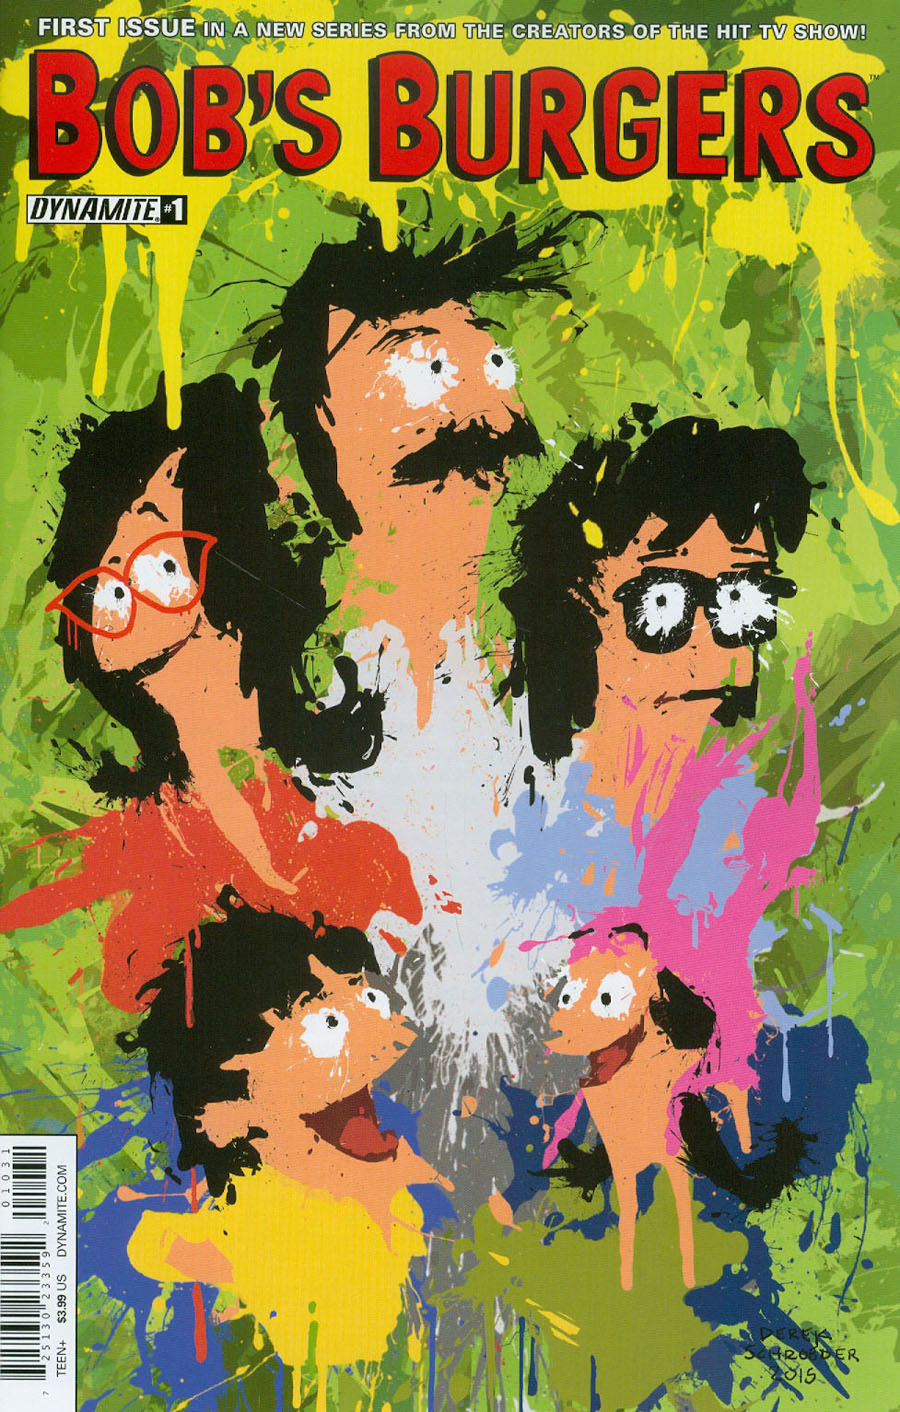 Bobs Burgers Vol 2 #1 Cover C Variant Derek Schroeder Work Of Art Cover